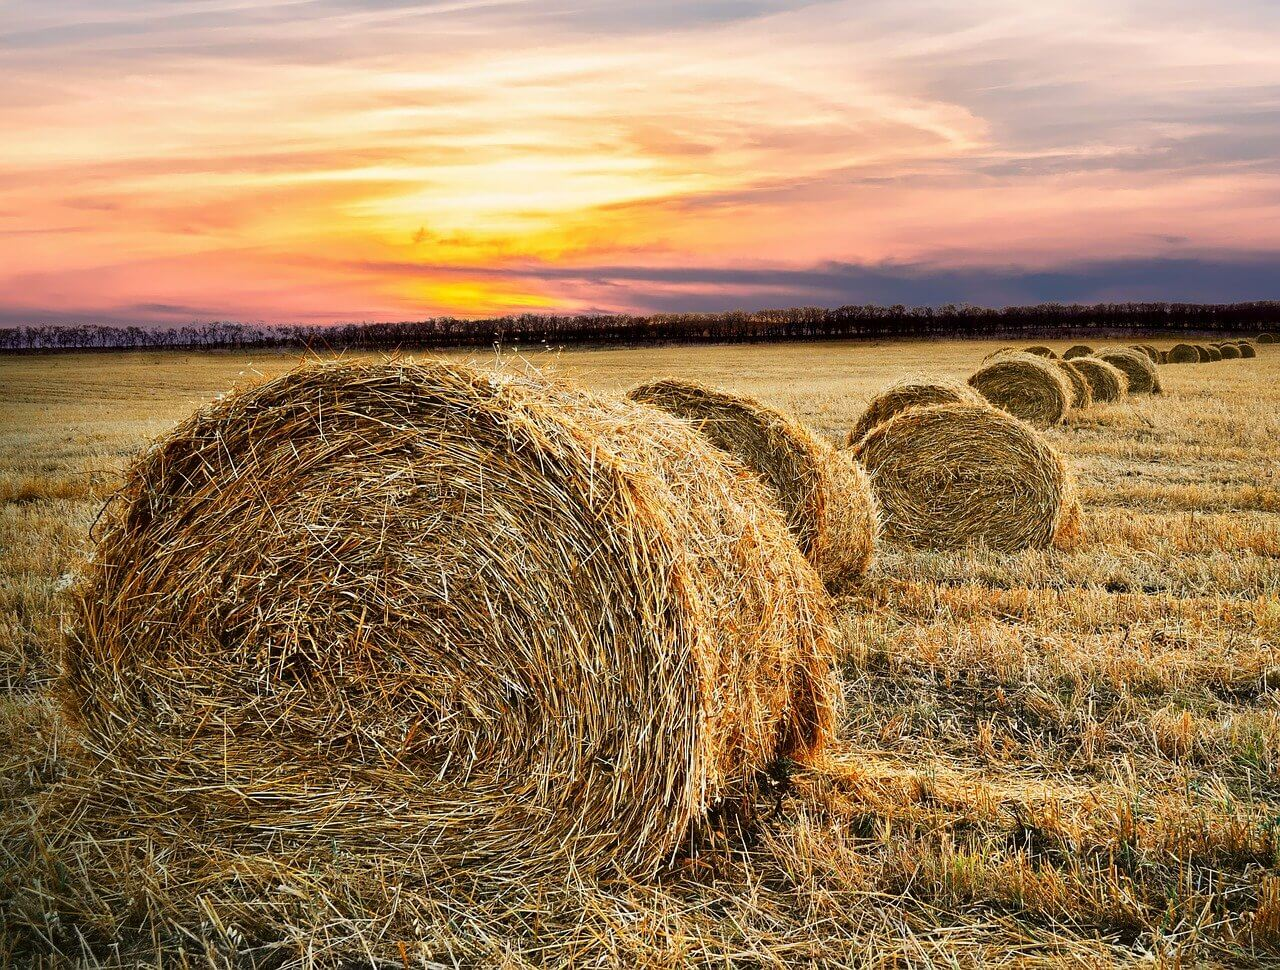 The Hay is in the Barn